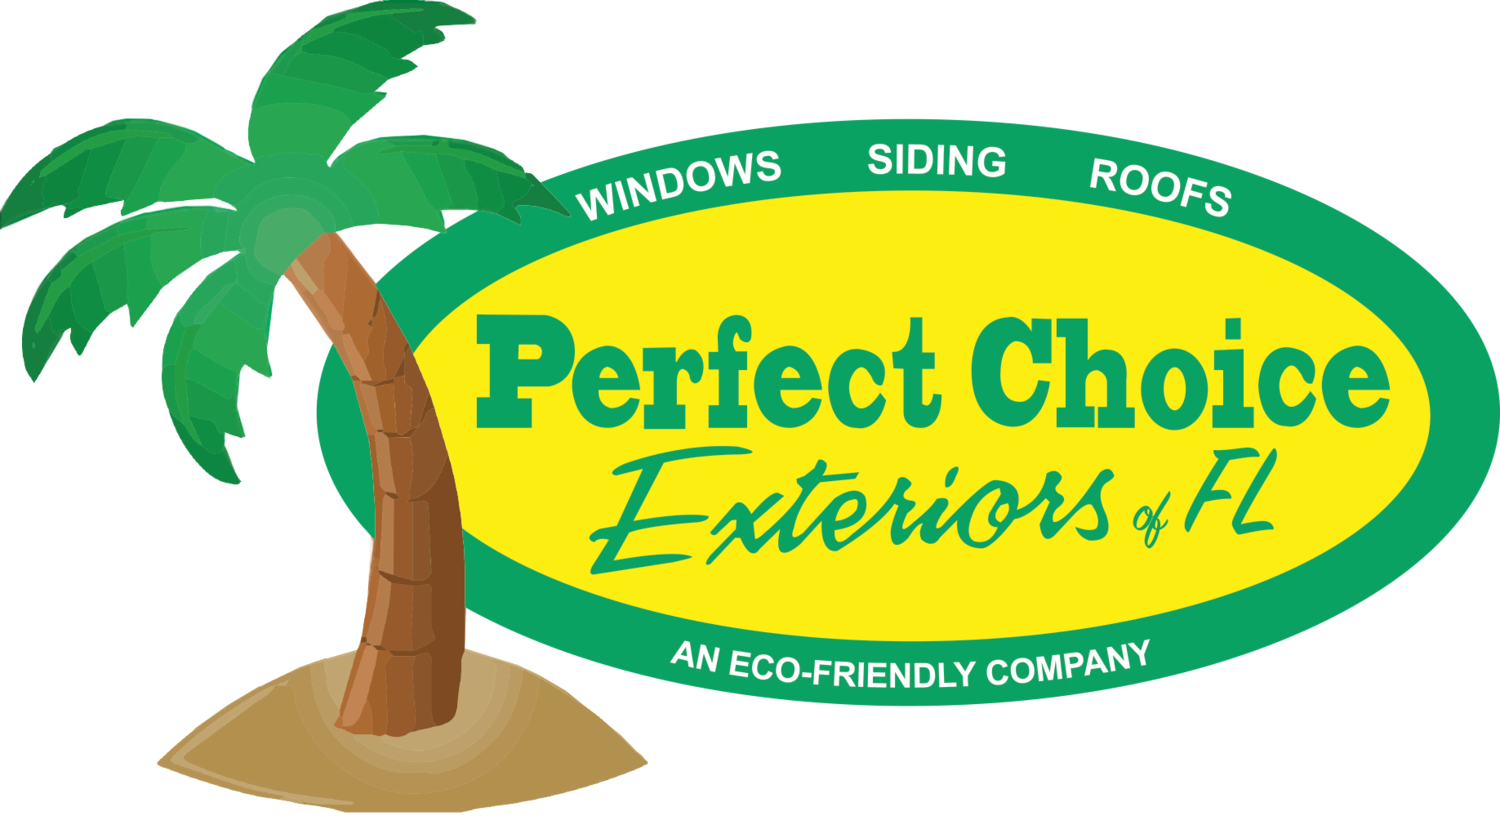 Perfect Choice Exteriors of Florida